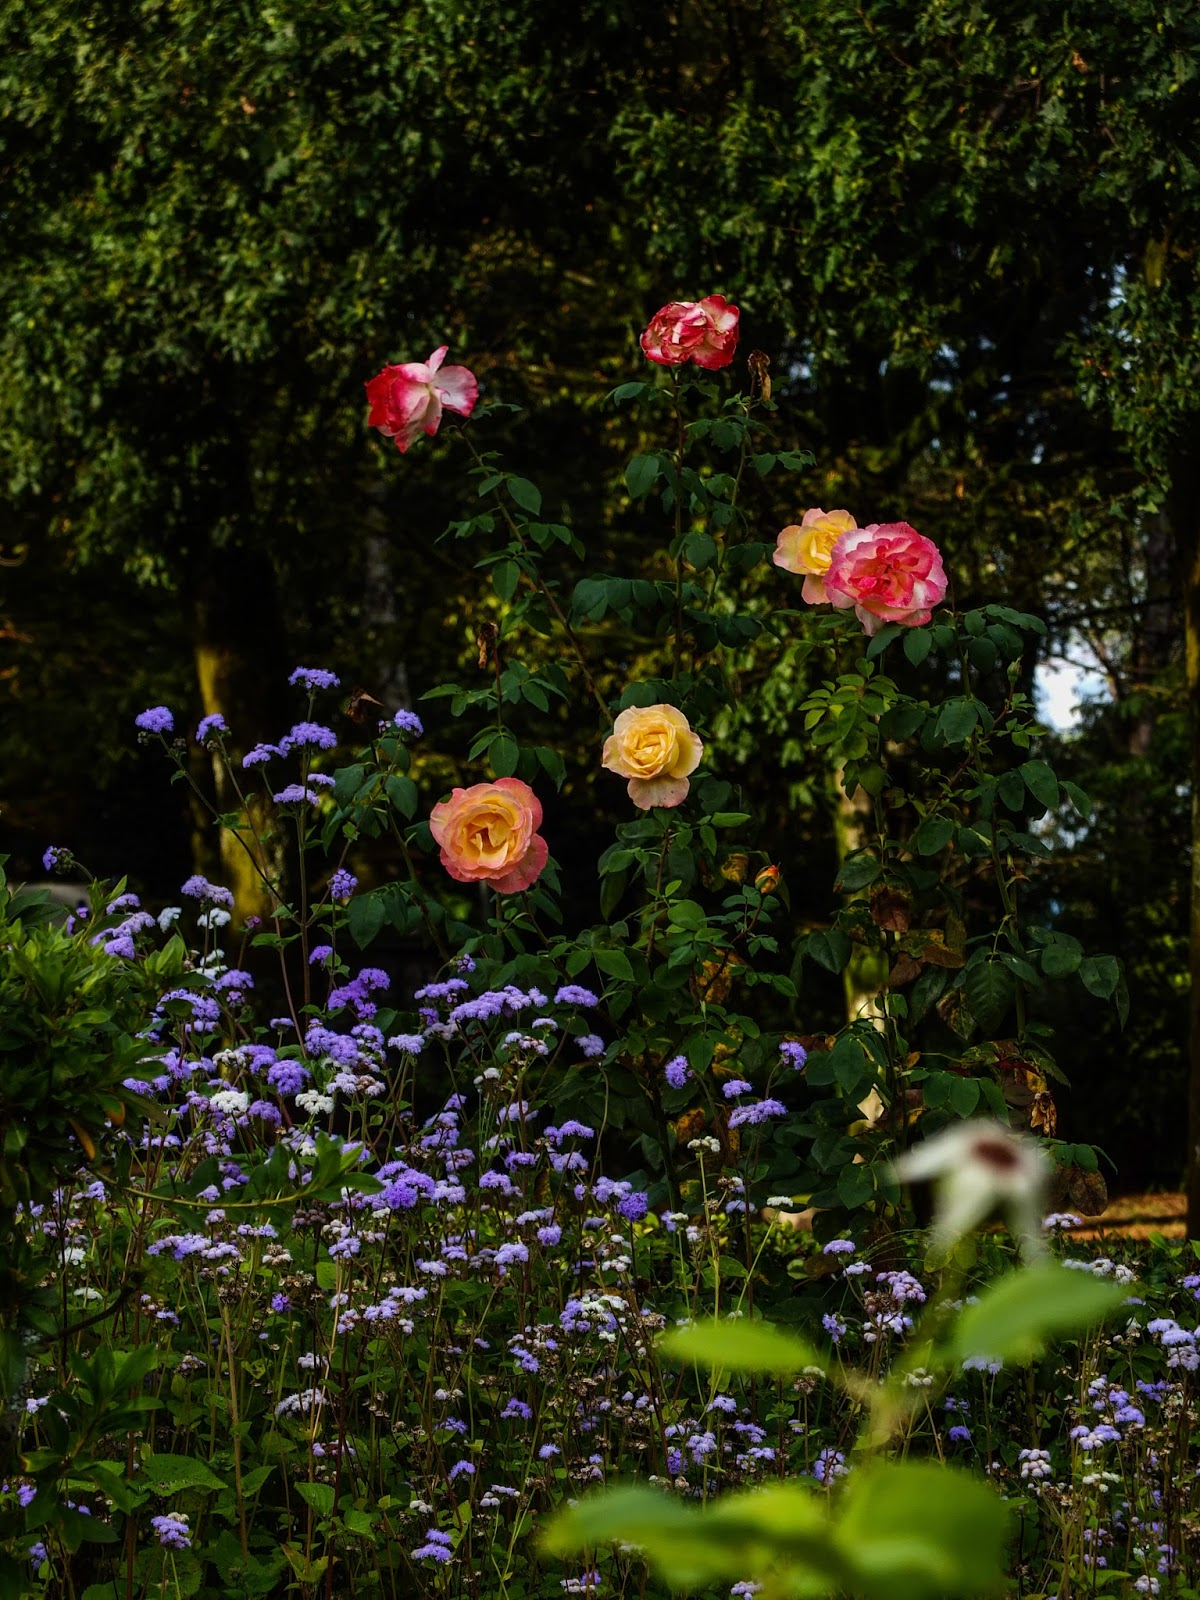 Roses in a flower garden in Porto, Portugal.